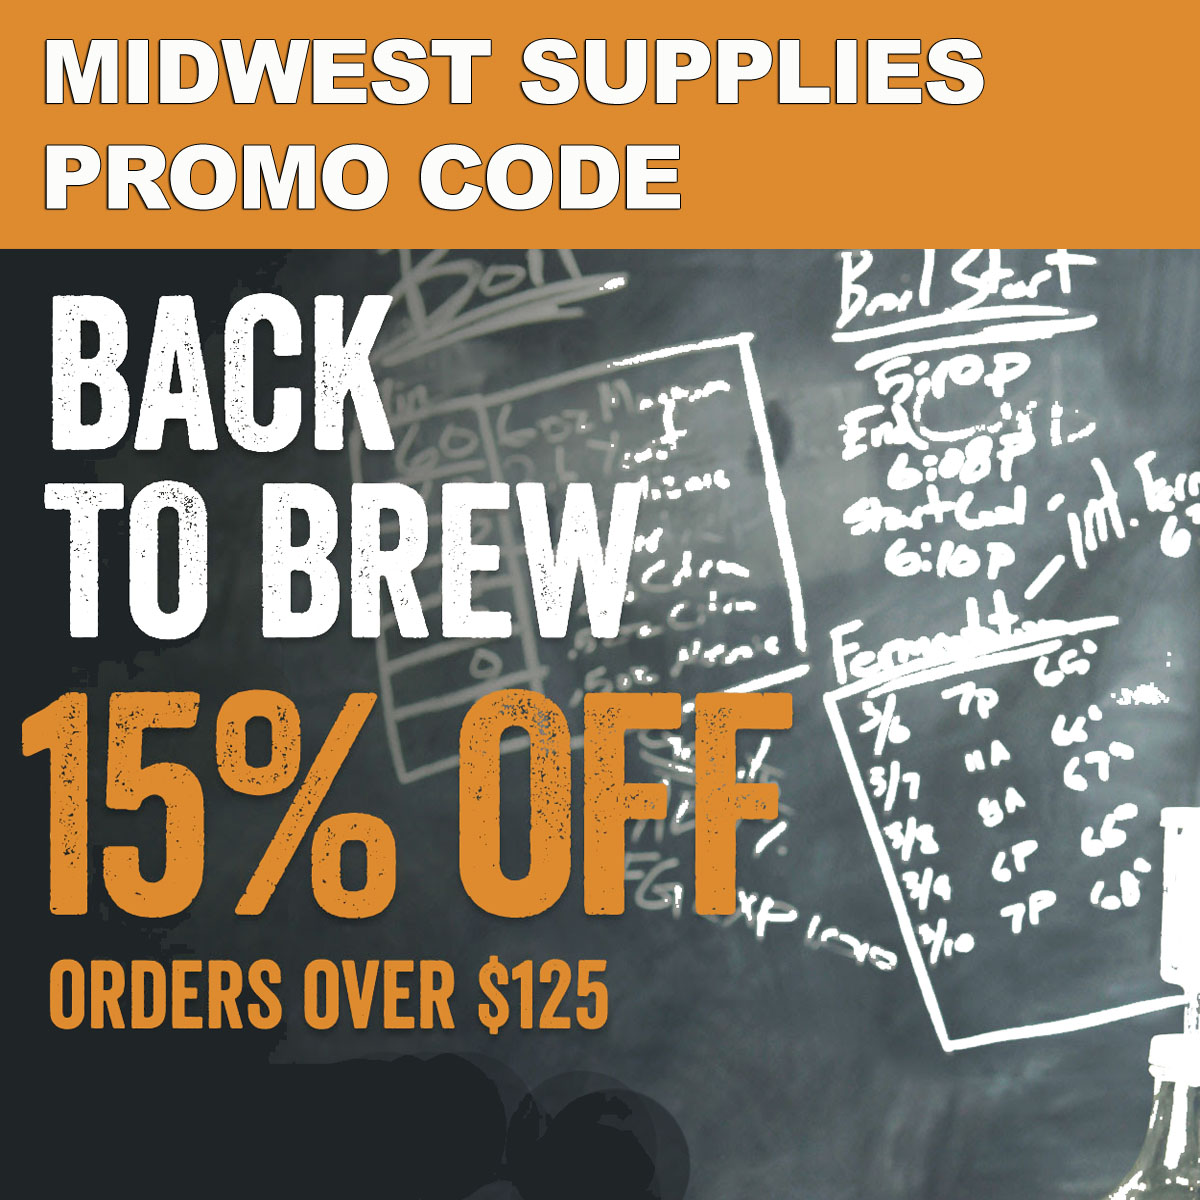 Homebrewing Promo Codes for Midwest Supplies - September 2019